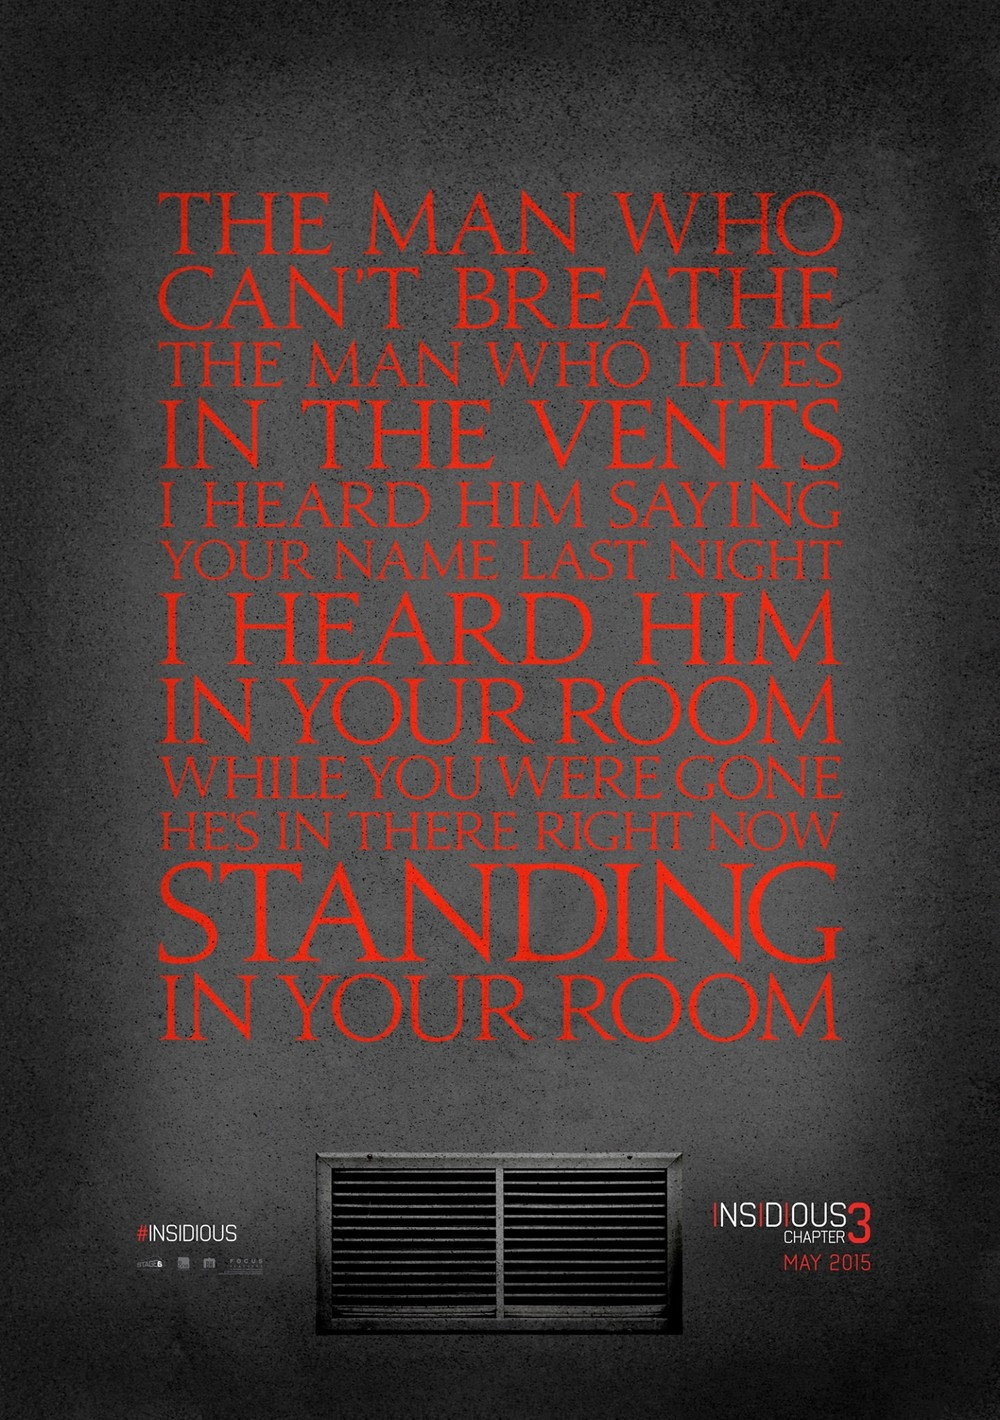 Insidious 3 release date in Melbourne